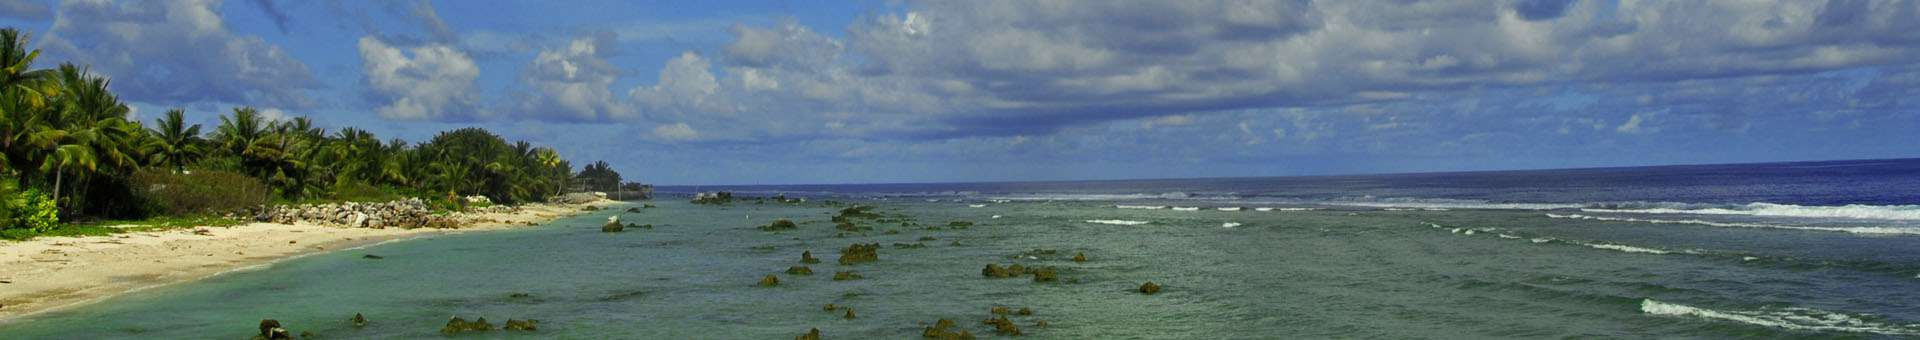 Search Whois information of domain names in Nauru Island